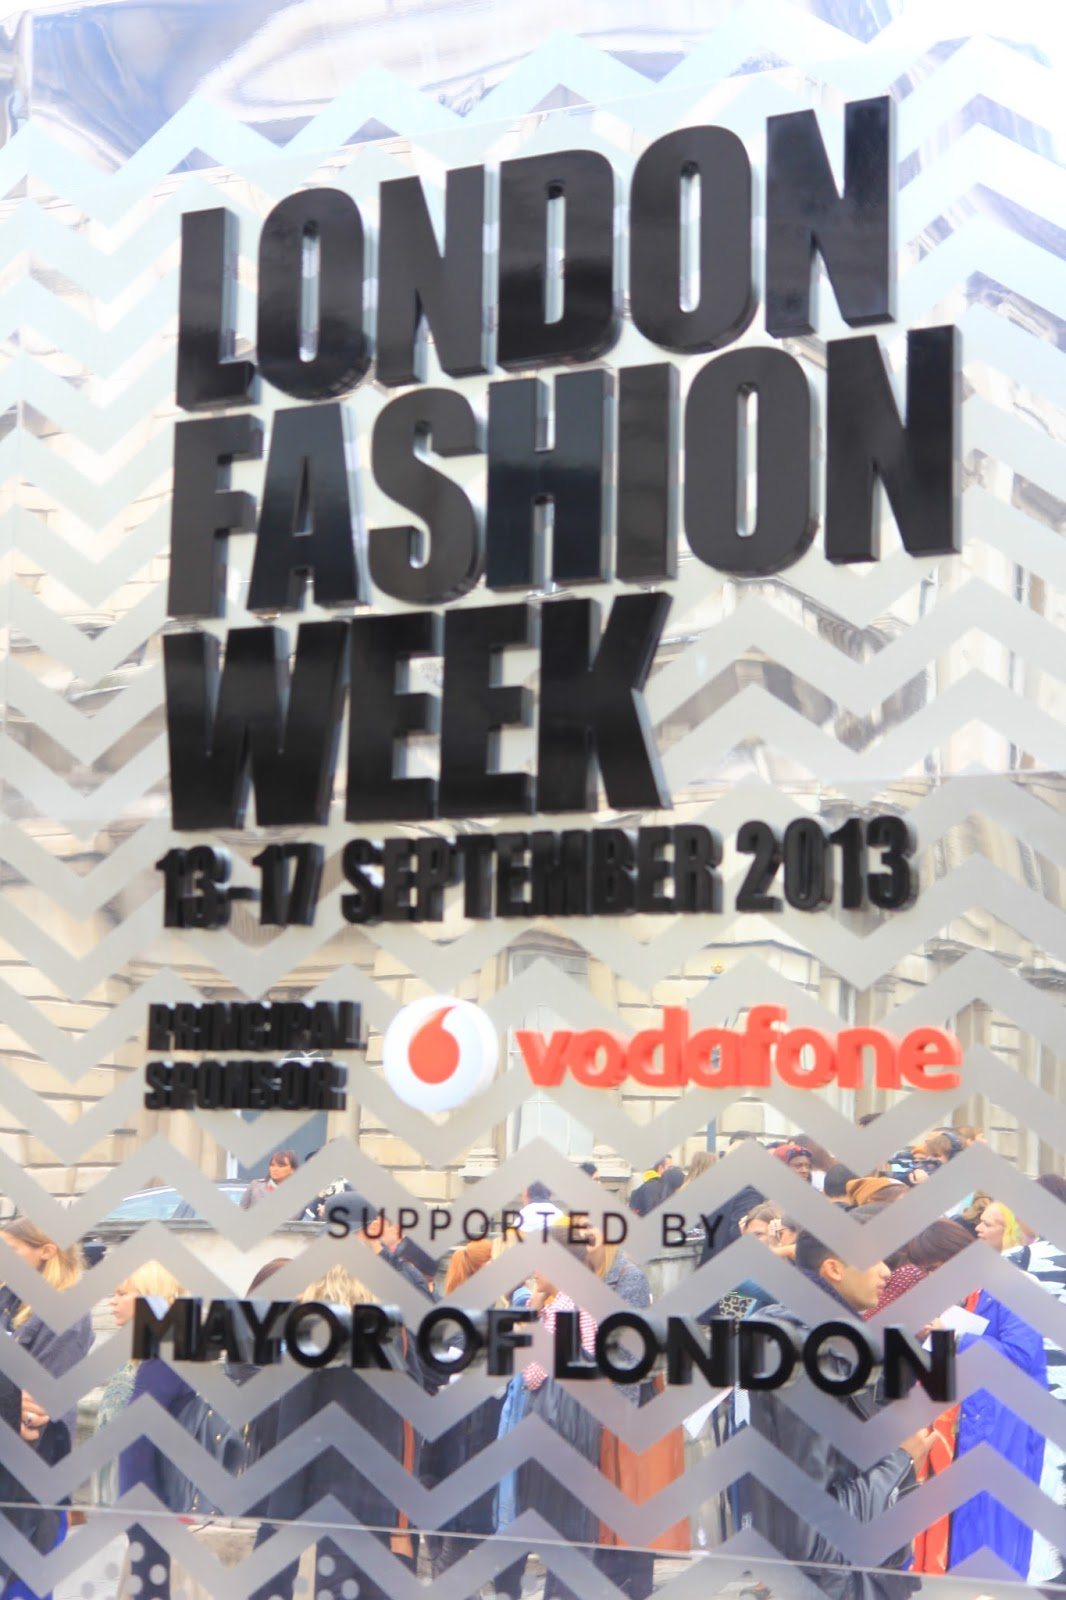 London Fashion Week| Part 2